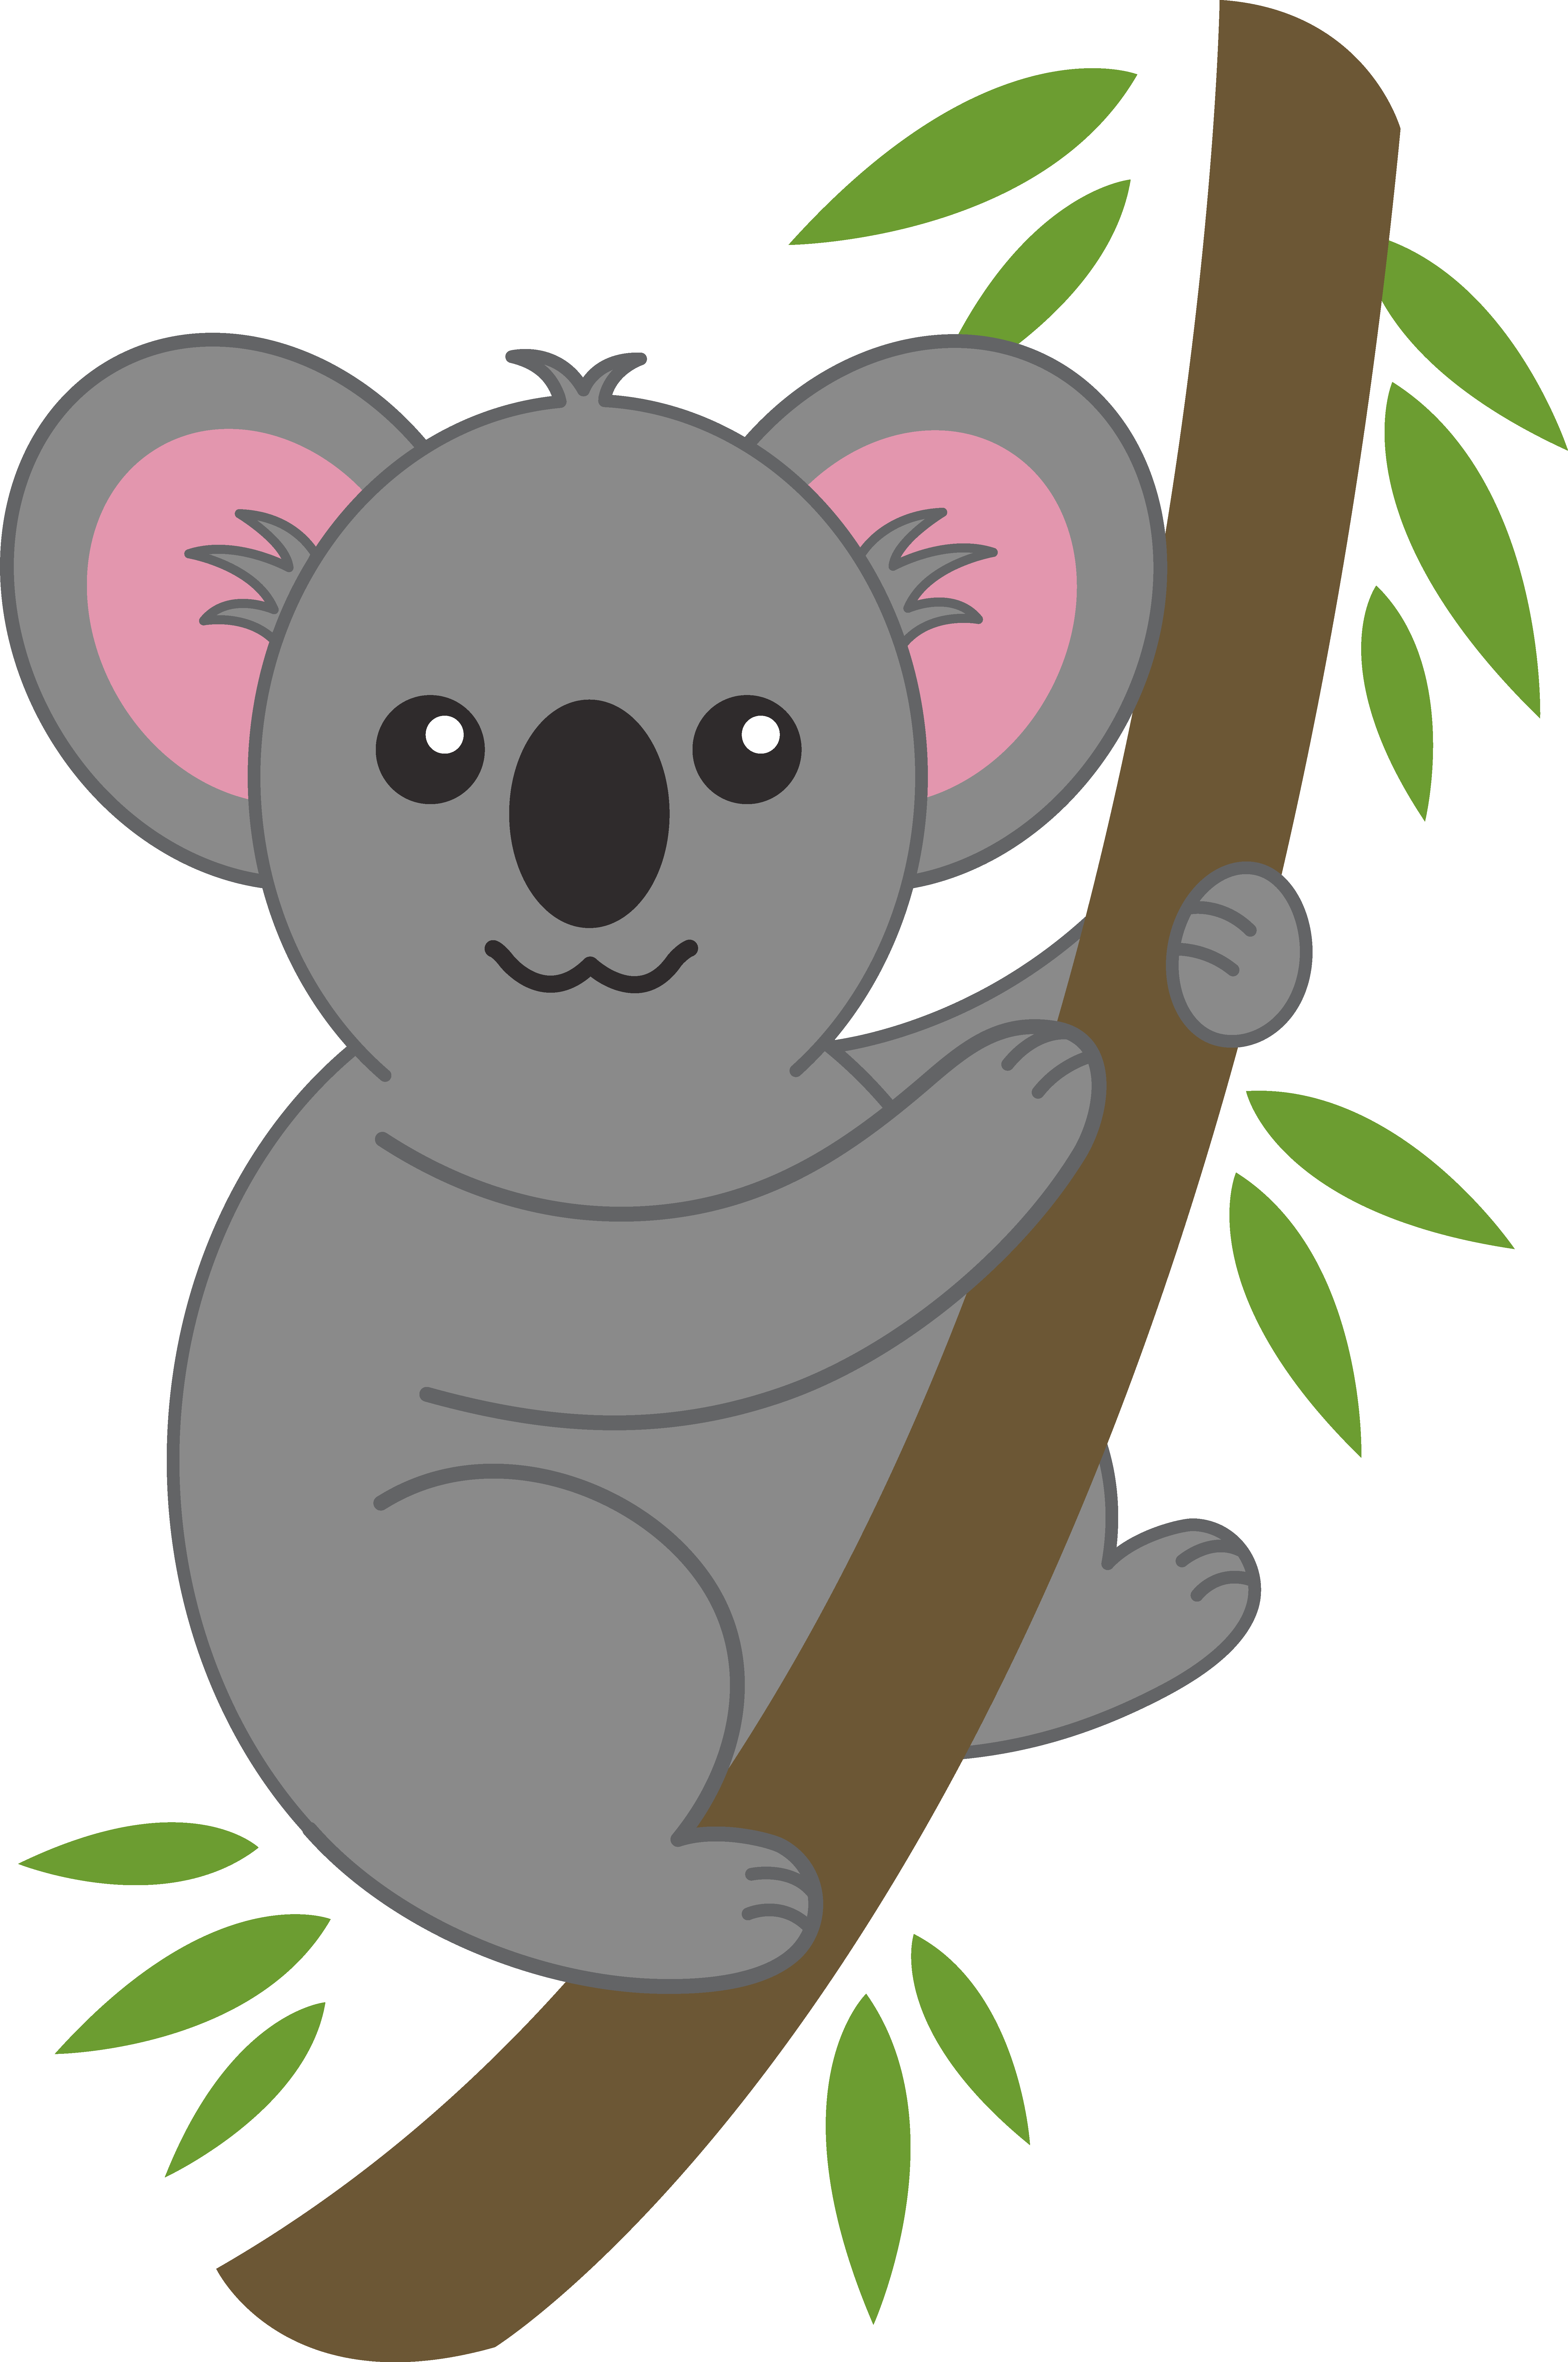 Clipart koalas clip library download Free Koala Cliparts, Download Free Clip Art, Free Clip Art on ... clip library download